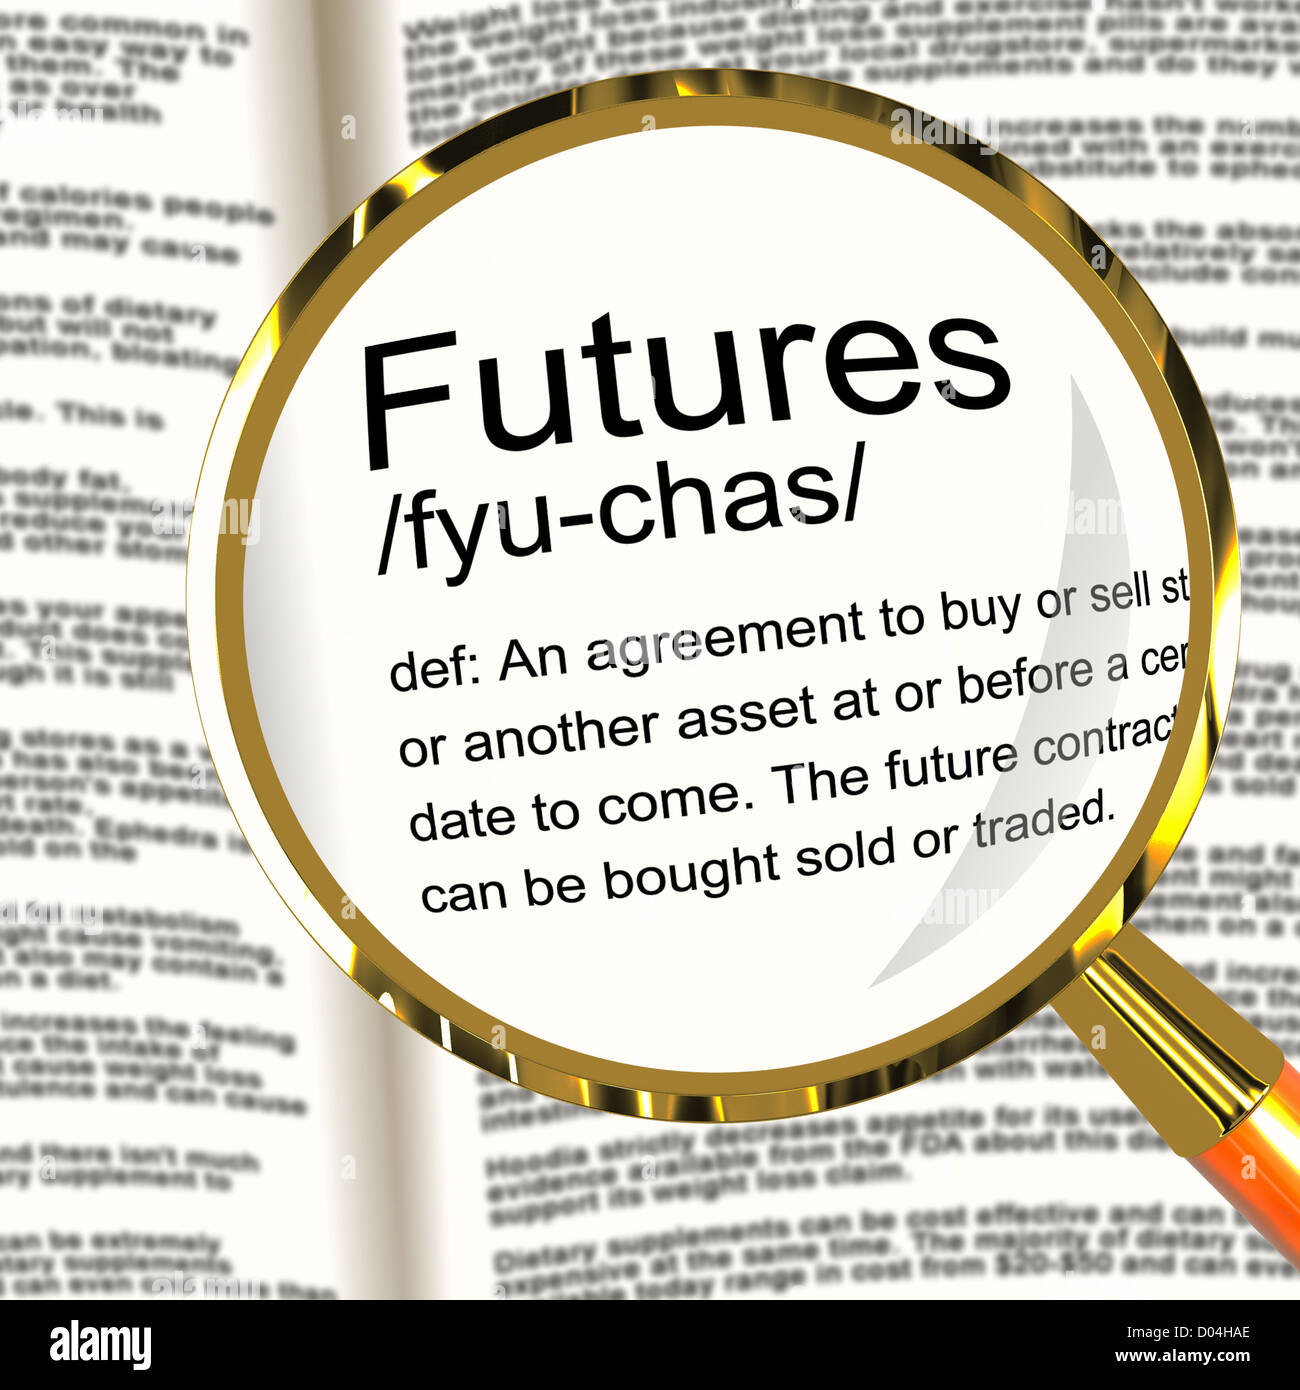 Futures Definition Magnifier Shows Advance Contract To Buy Or Sell How To  Make Money